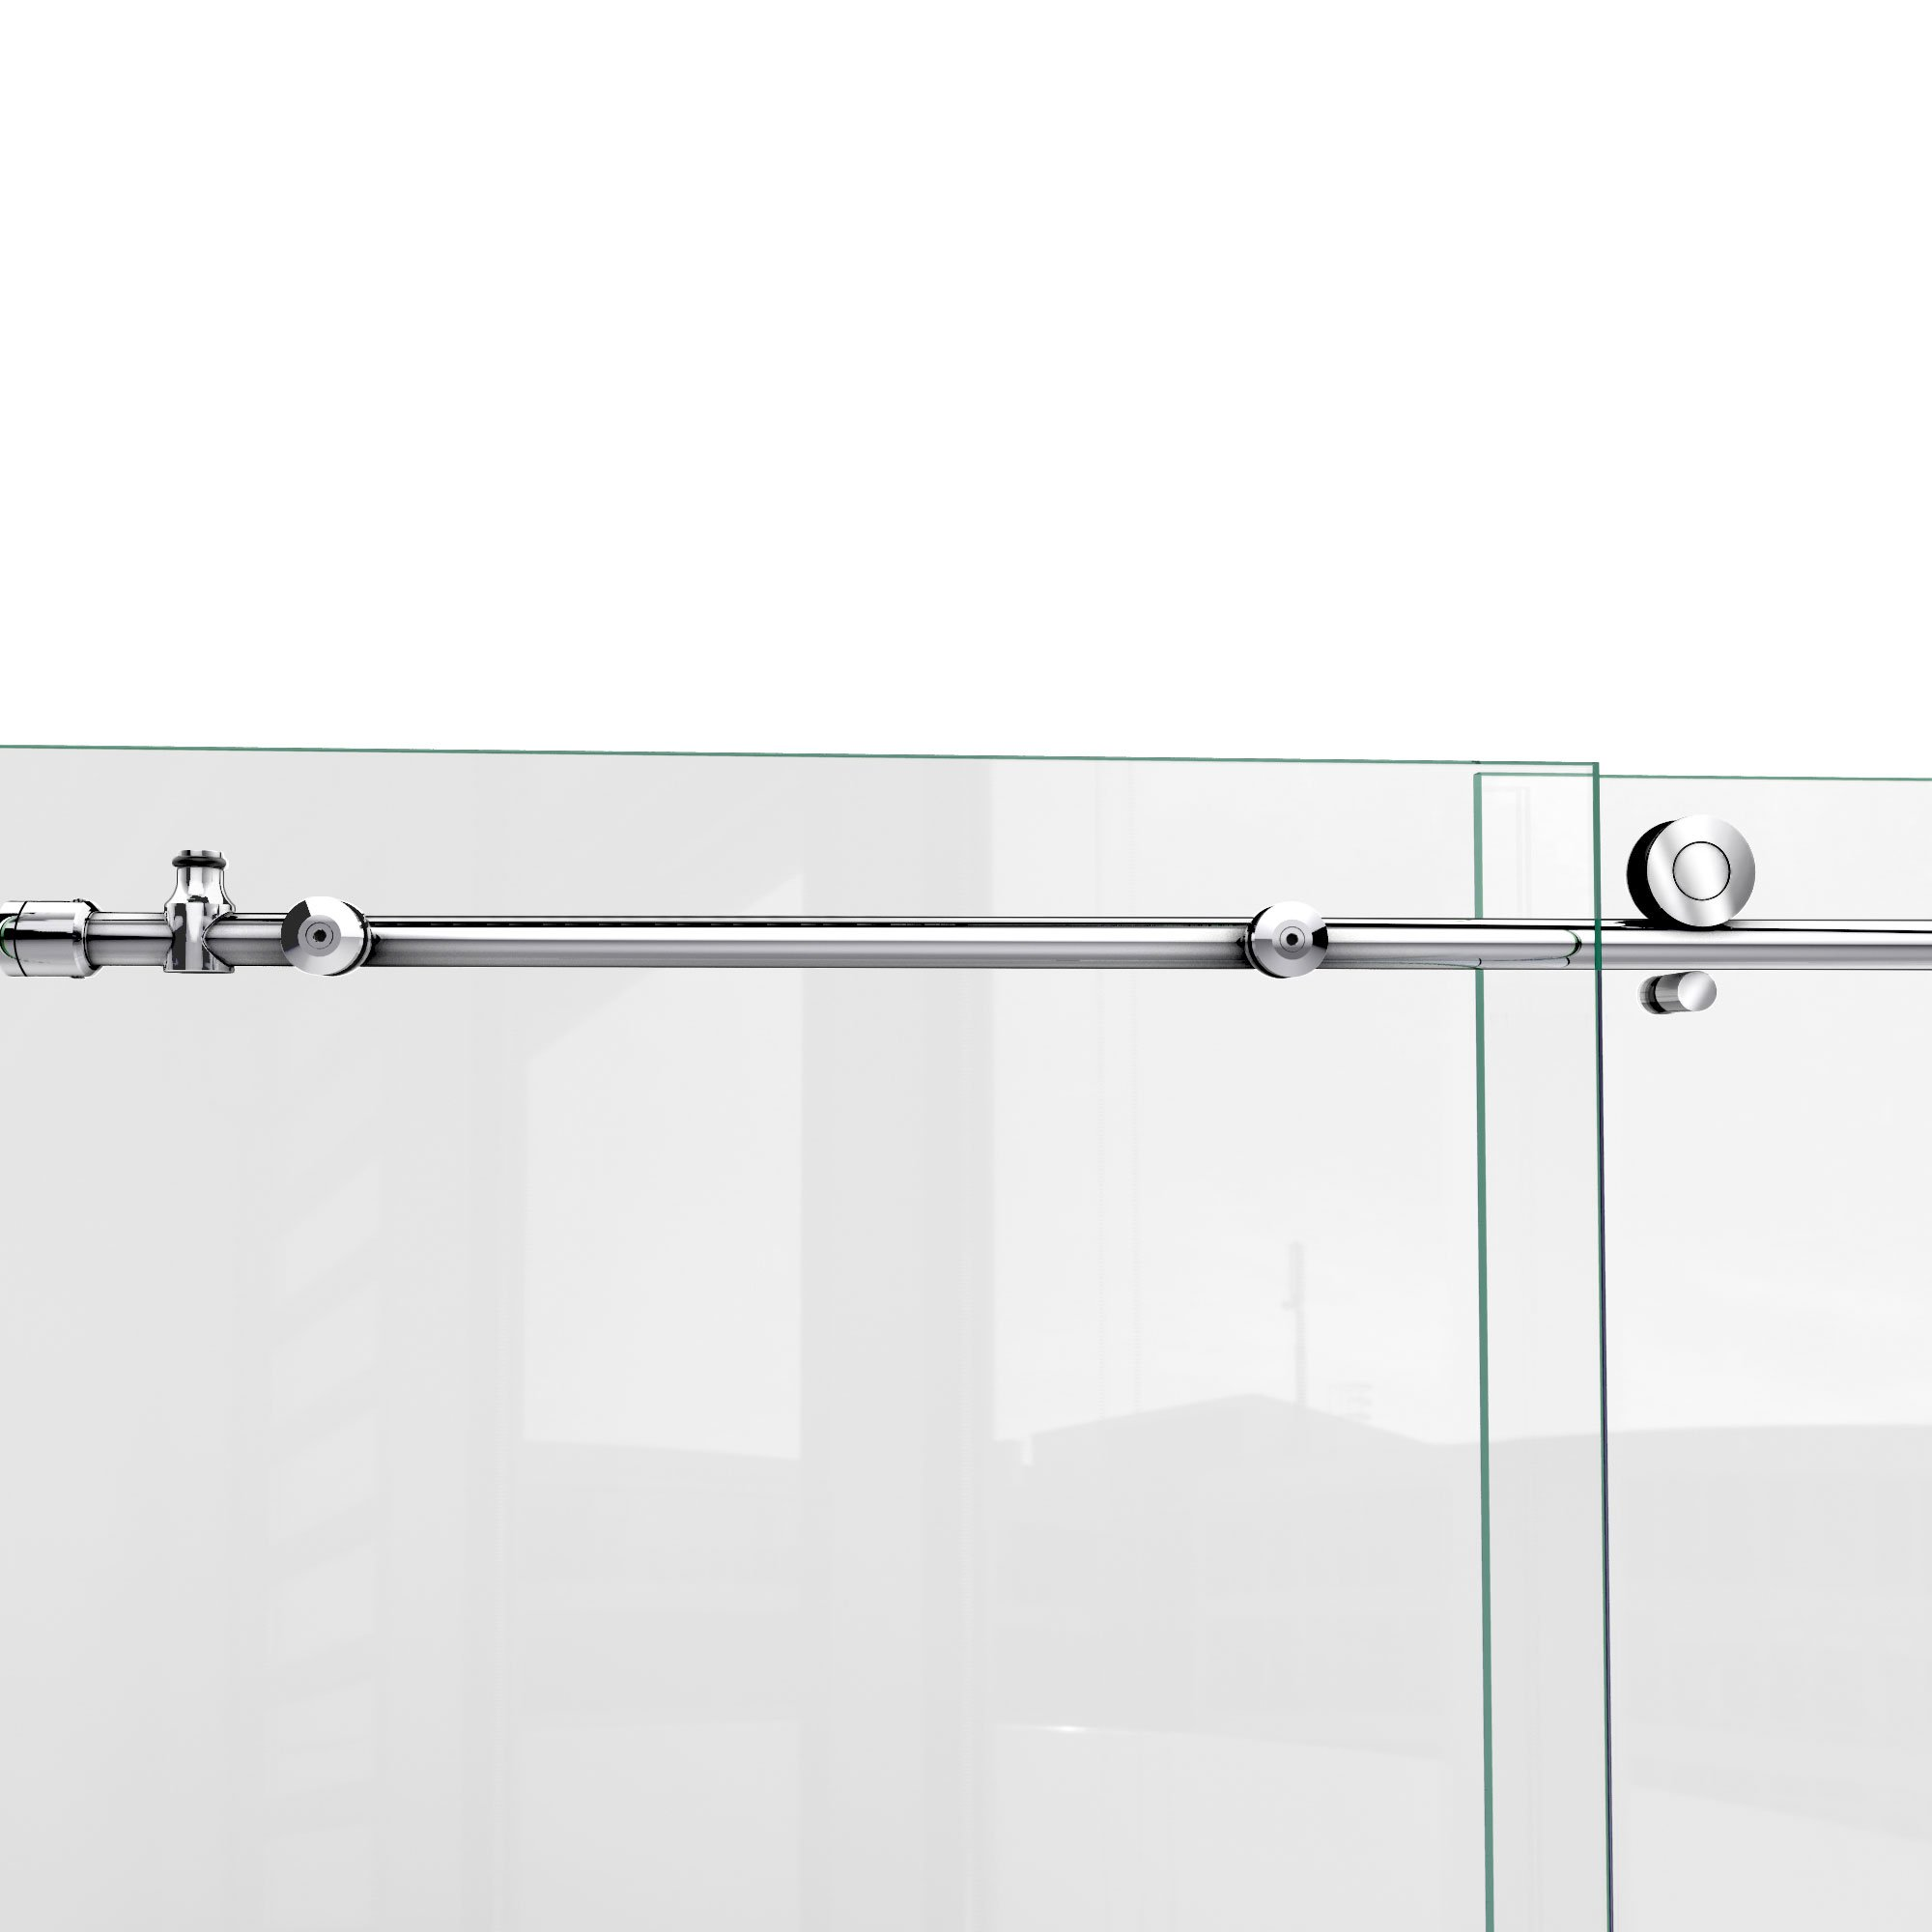 DreamLine Enigma-X 55-59 in. W x 62 in. H Fully Frameless Sliding Tub Door in Polished Stainless Steel, SHDR-61606210-08 by DreamLine (Image #14)